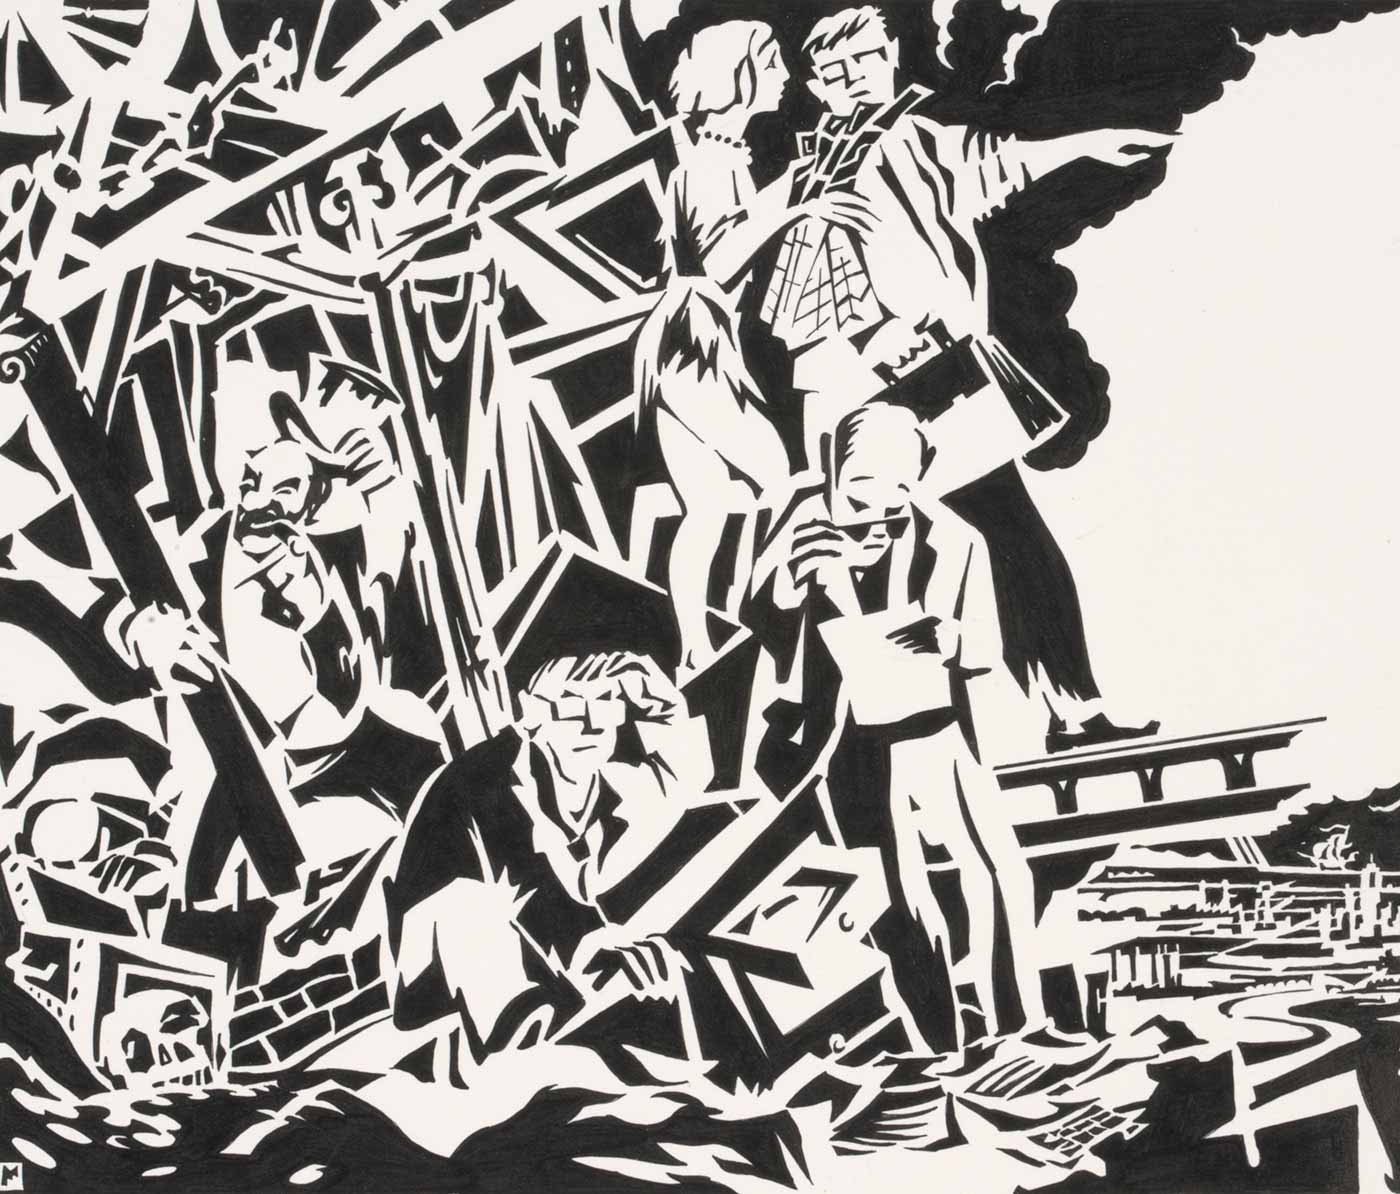 A black and white illustration showing people emerging from a wrecked building. The group includes a traditional banker figure lifting his top hat; and a man carrying a briefcase and a woman with a folded plan, both dressed in ratty clothing, pointing away from the scene.  - click to view larger image